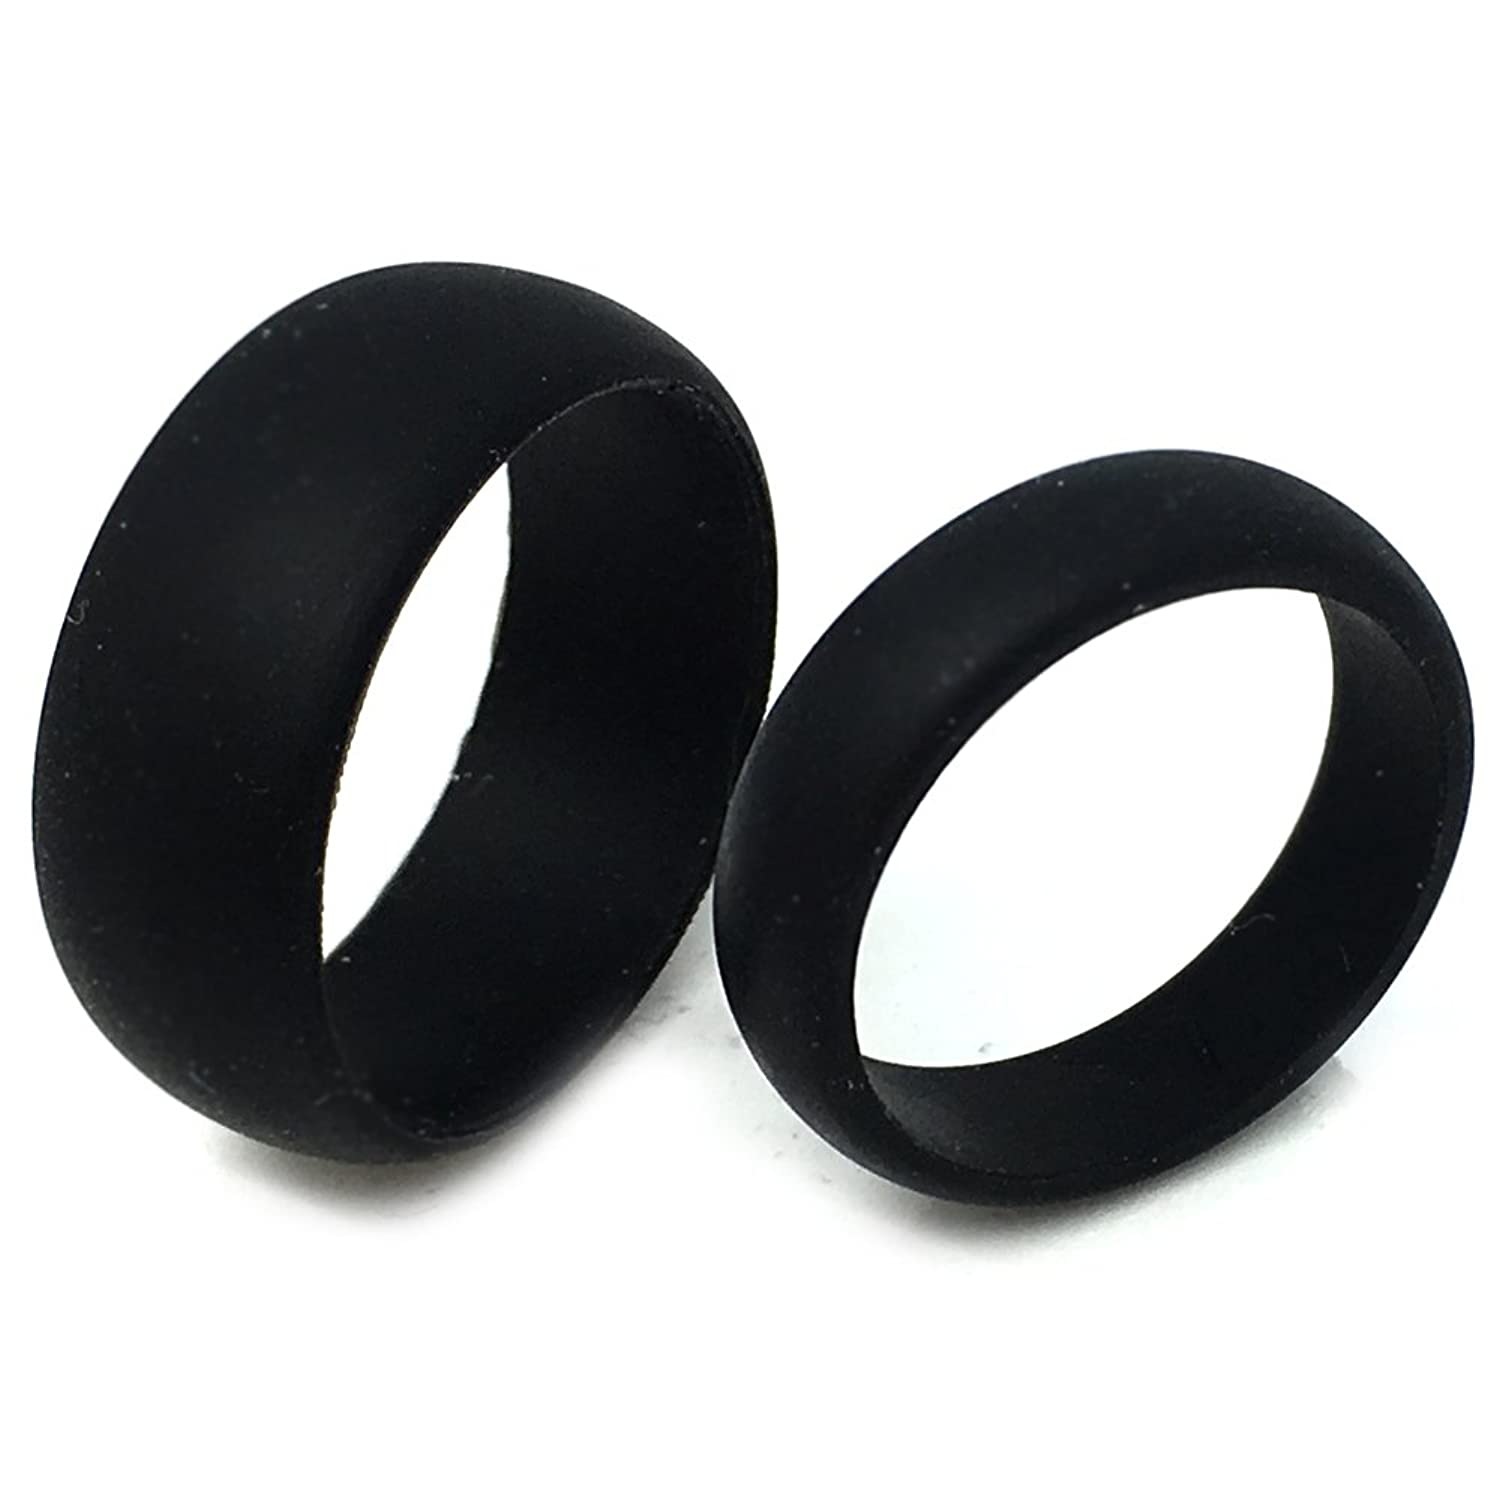 the bands mens for active wedding ring s men size products rings silicone perfect camouflage in